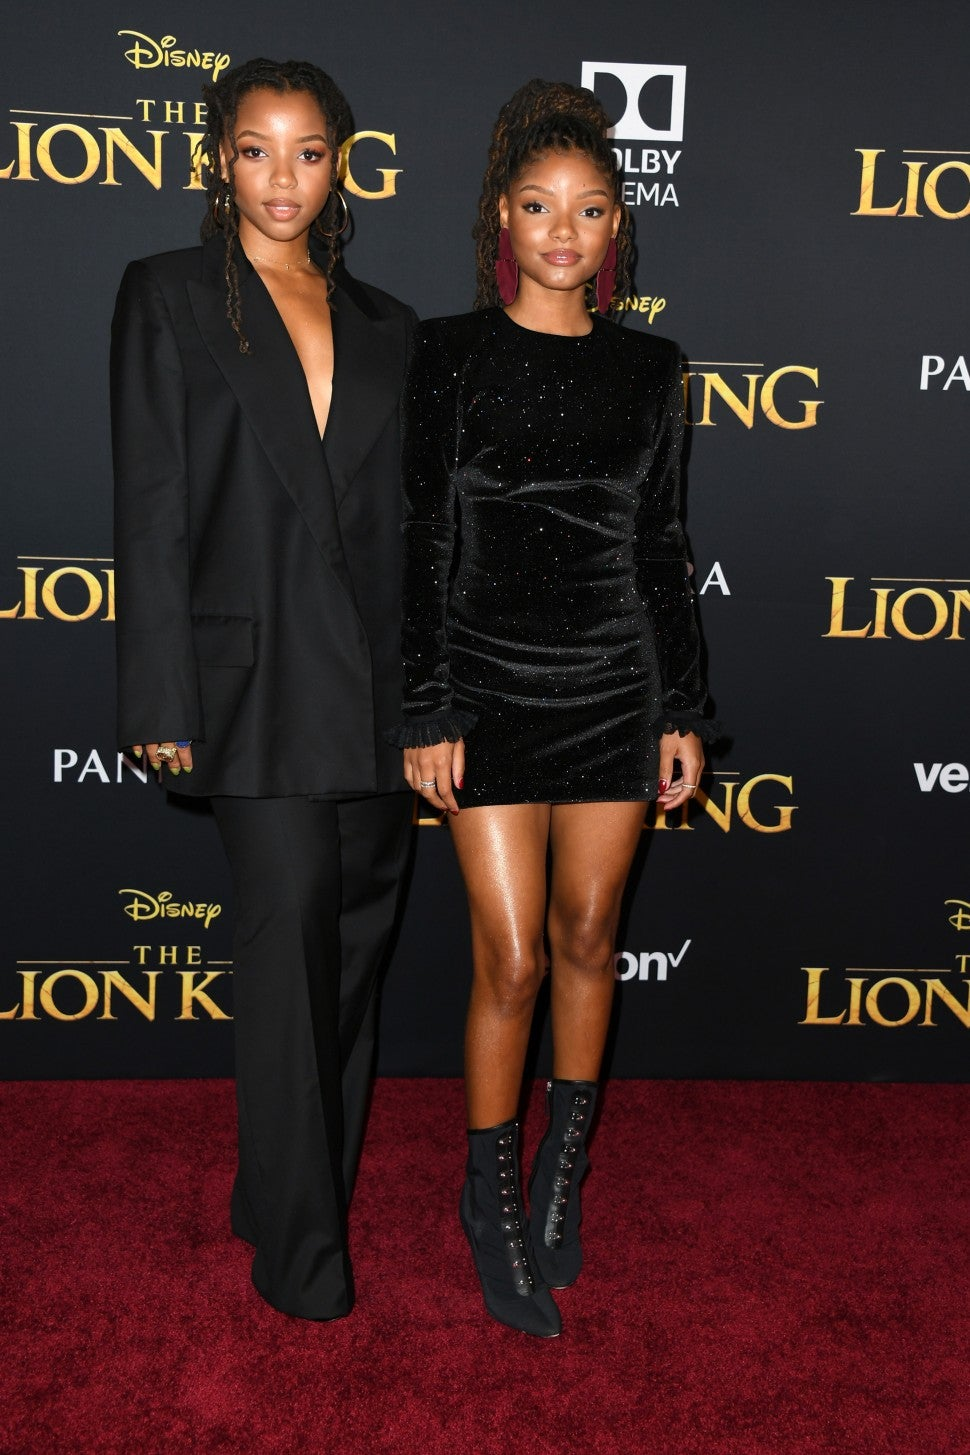 Chloe Bailey and Halle Bailey Lion King Premiere